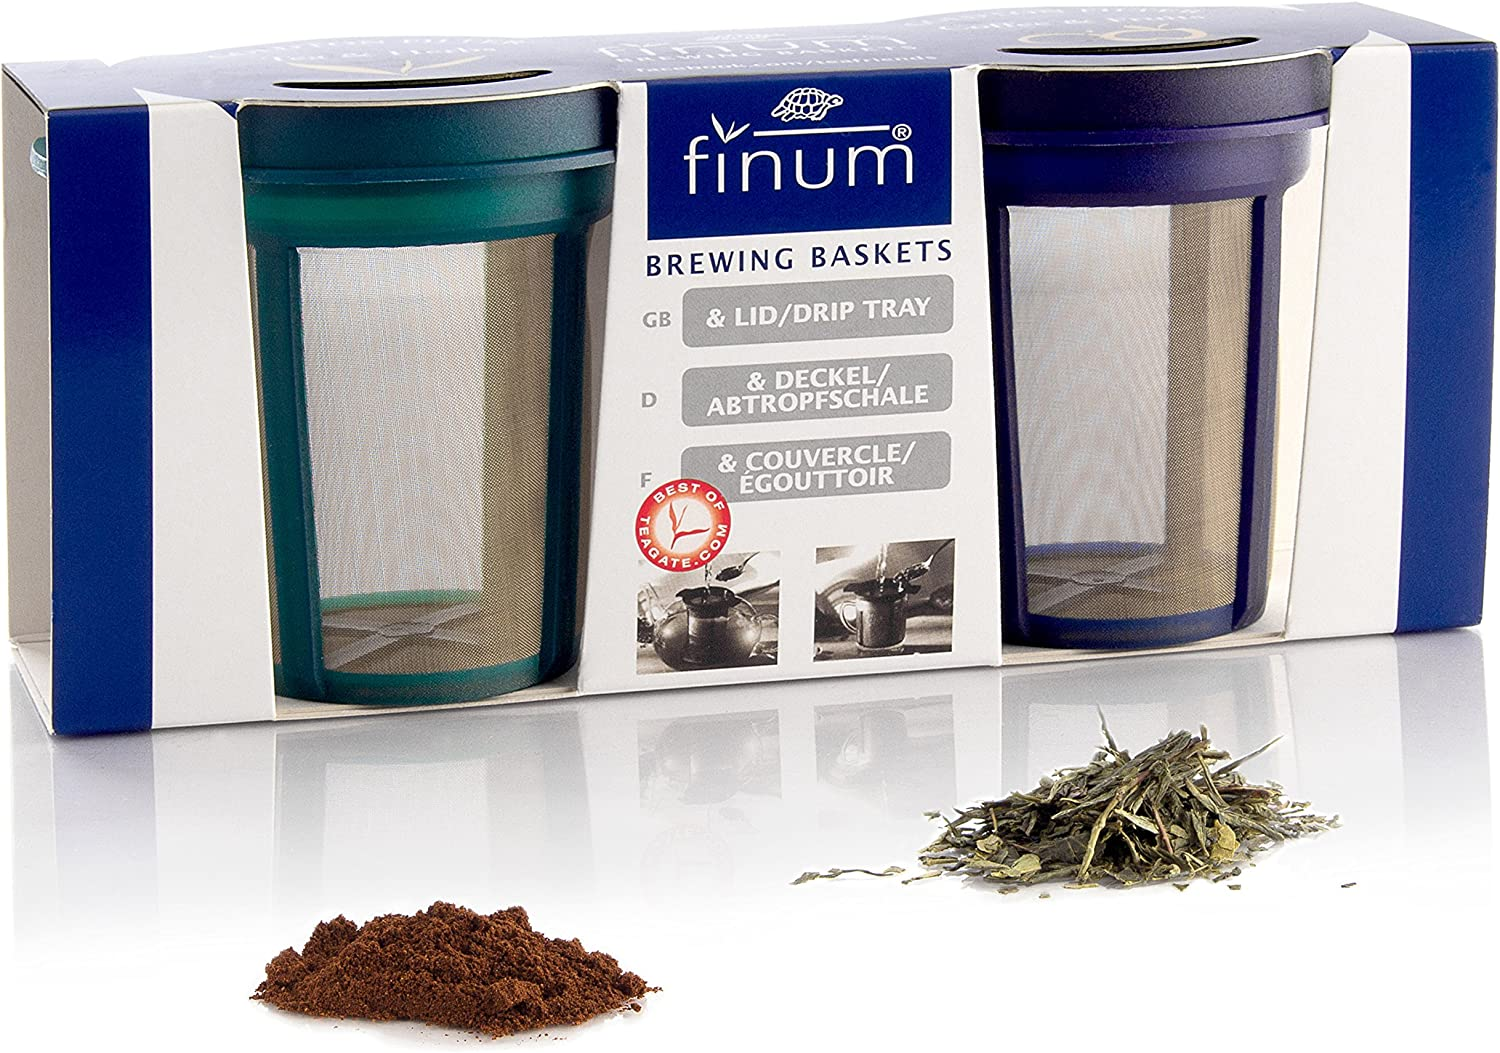 Finum (63/421.08.00) Goldton Reusable Stainless Steel Coffee and Tea Infusing Mesh Brewing Basket and Filters, Set of 2 Medium Sized Filters, Blue and Green